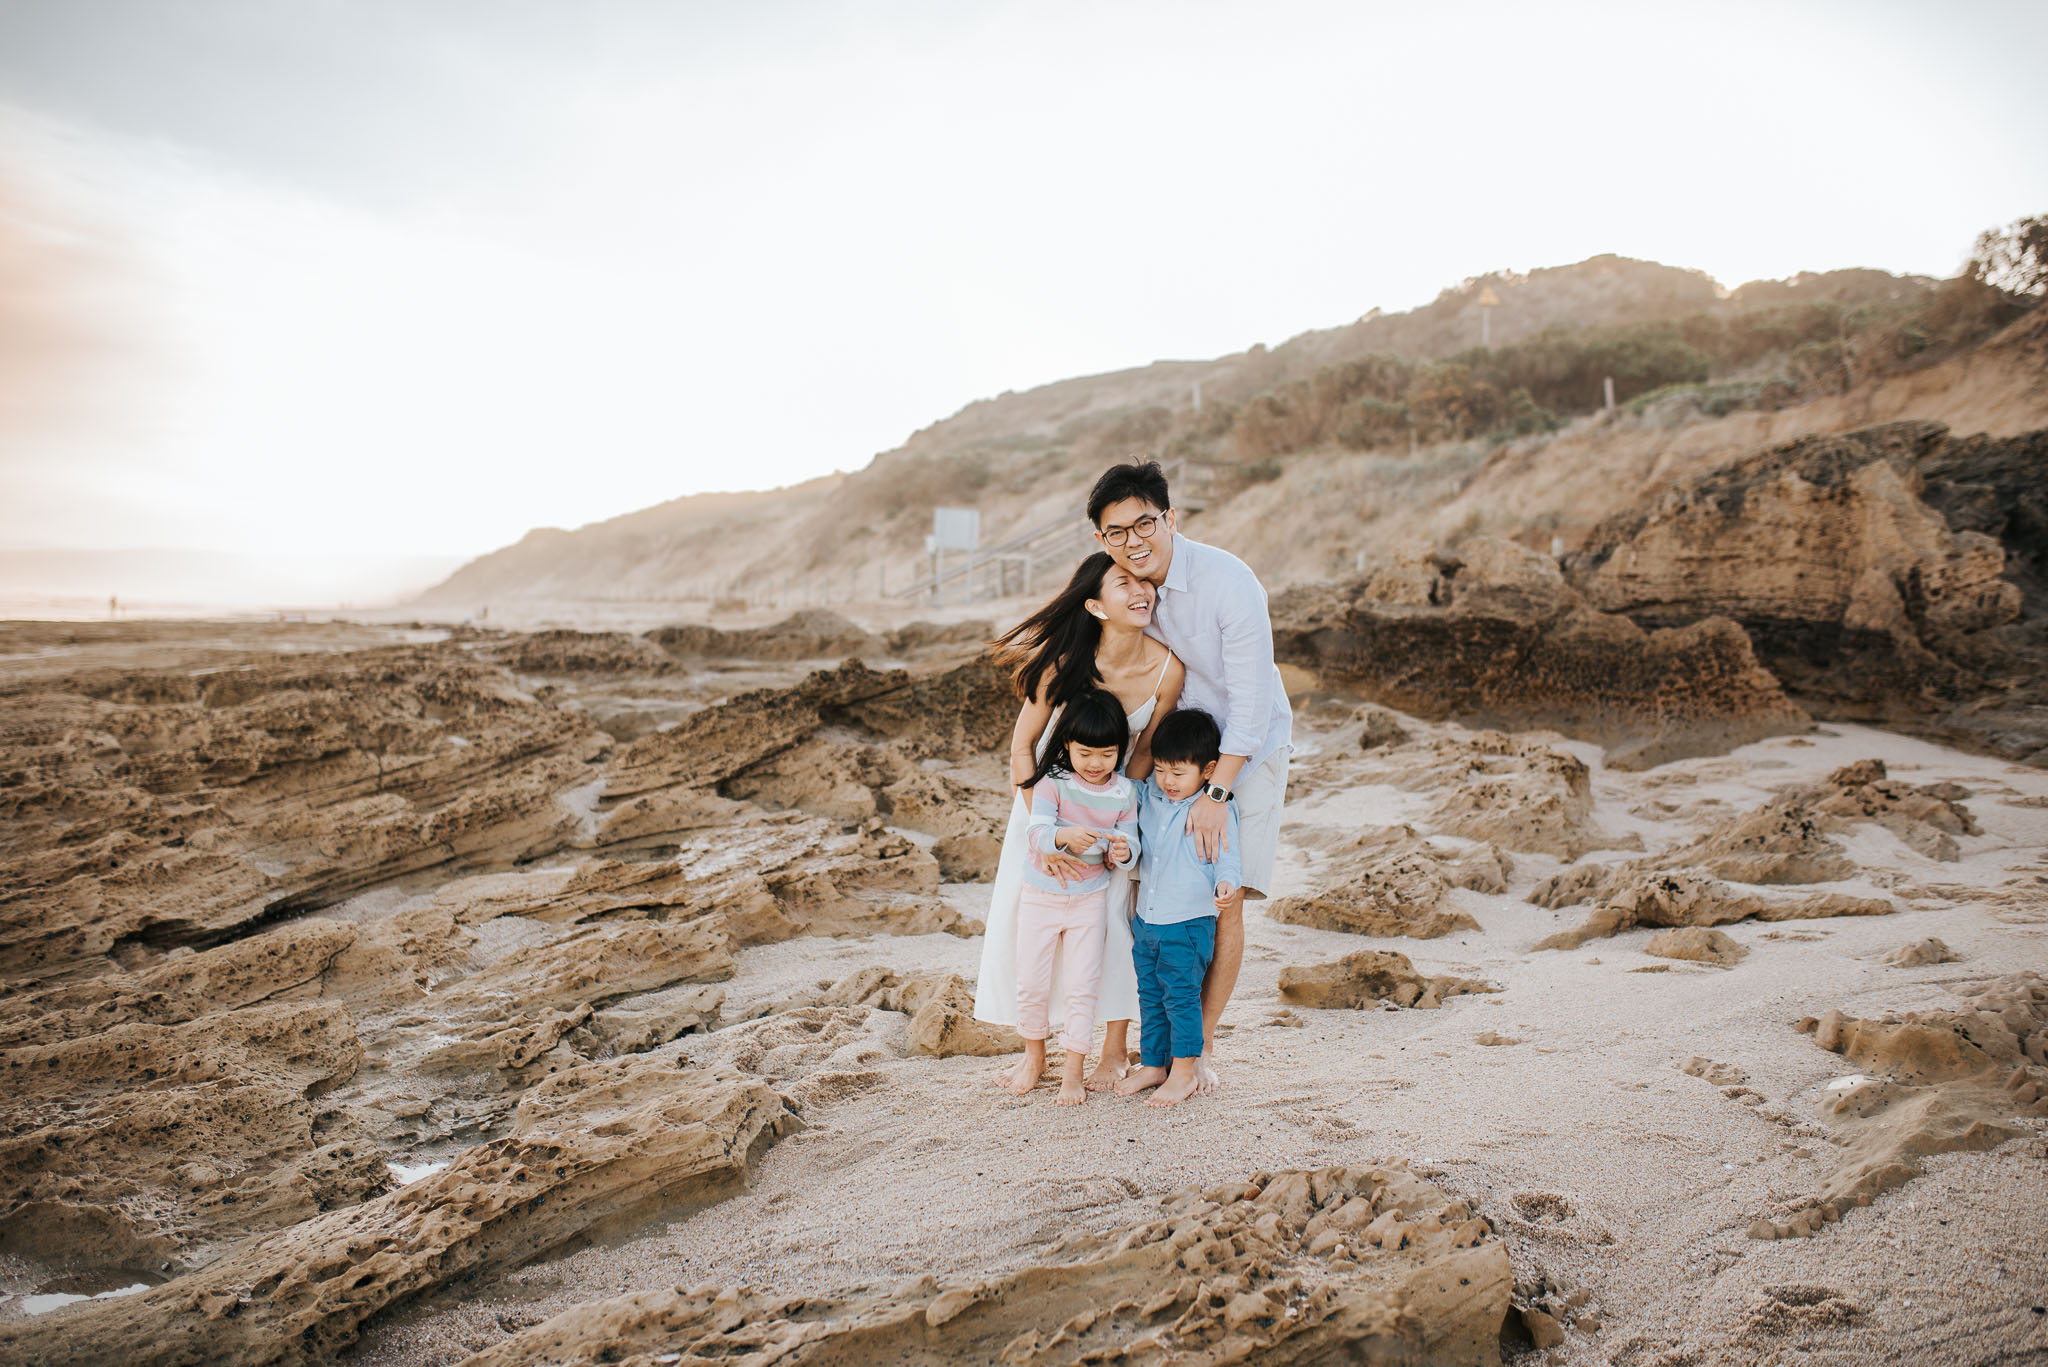 melbourne family photographer, jess worrall photography